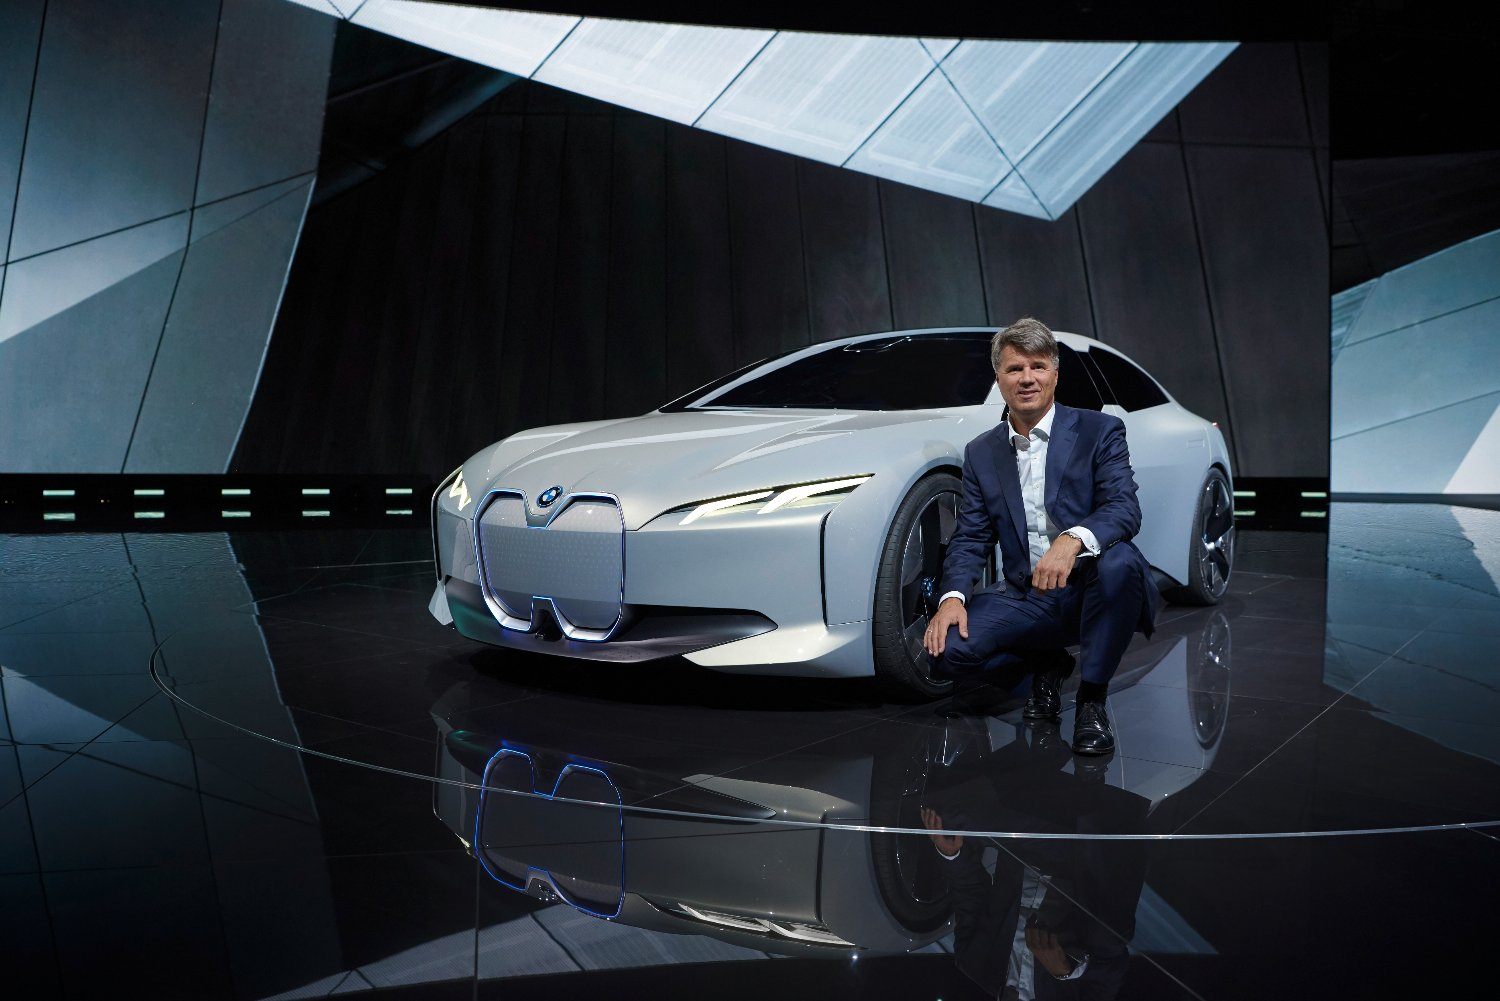 BMW at the IAA Cars 2017 in Frankfurt.